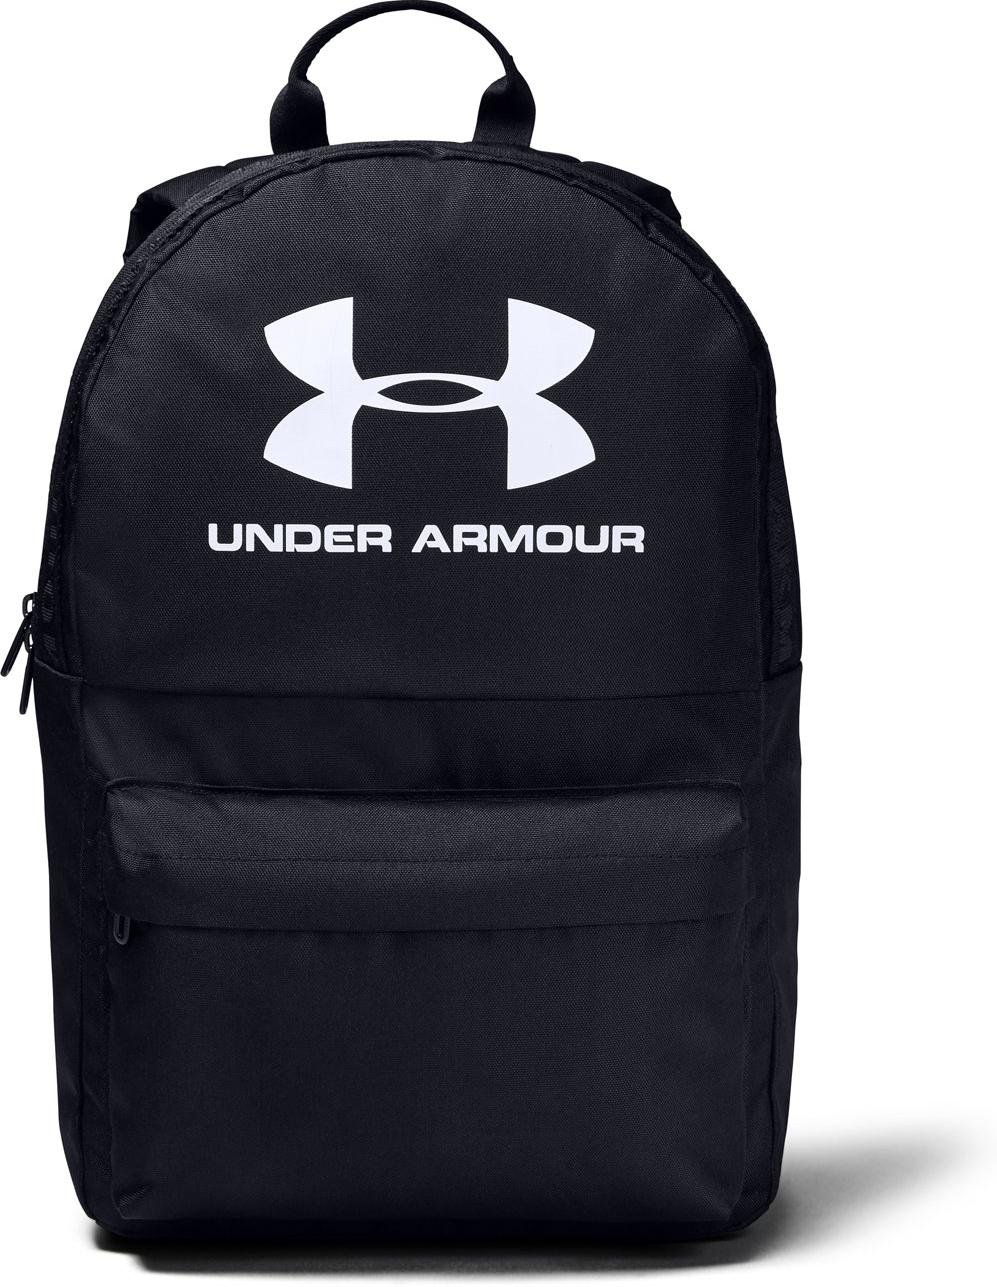 Mochila Under Armour Under Armour Loudon Backpack